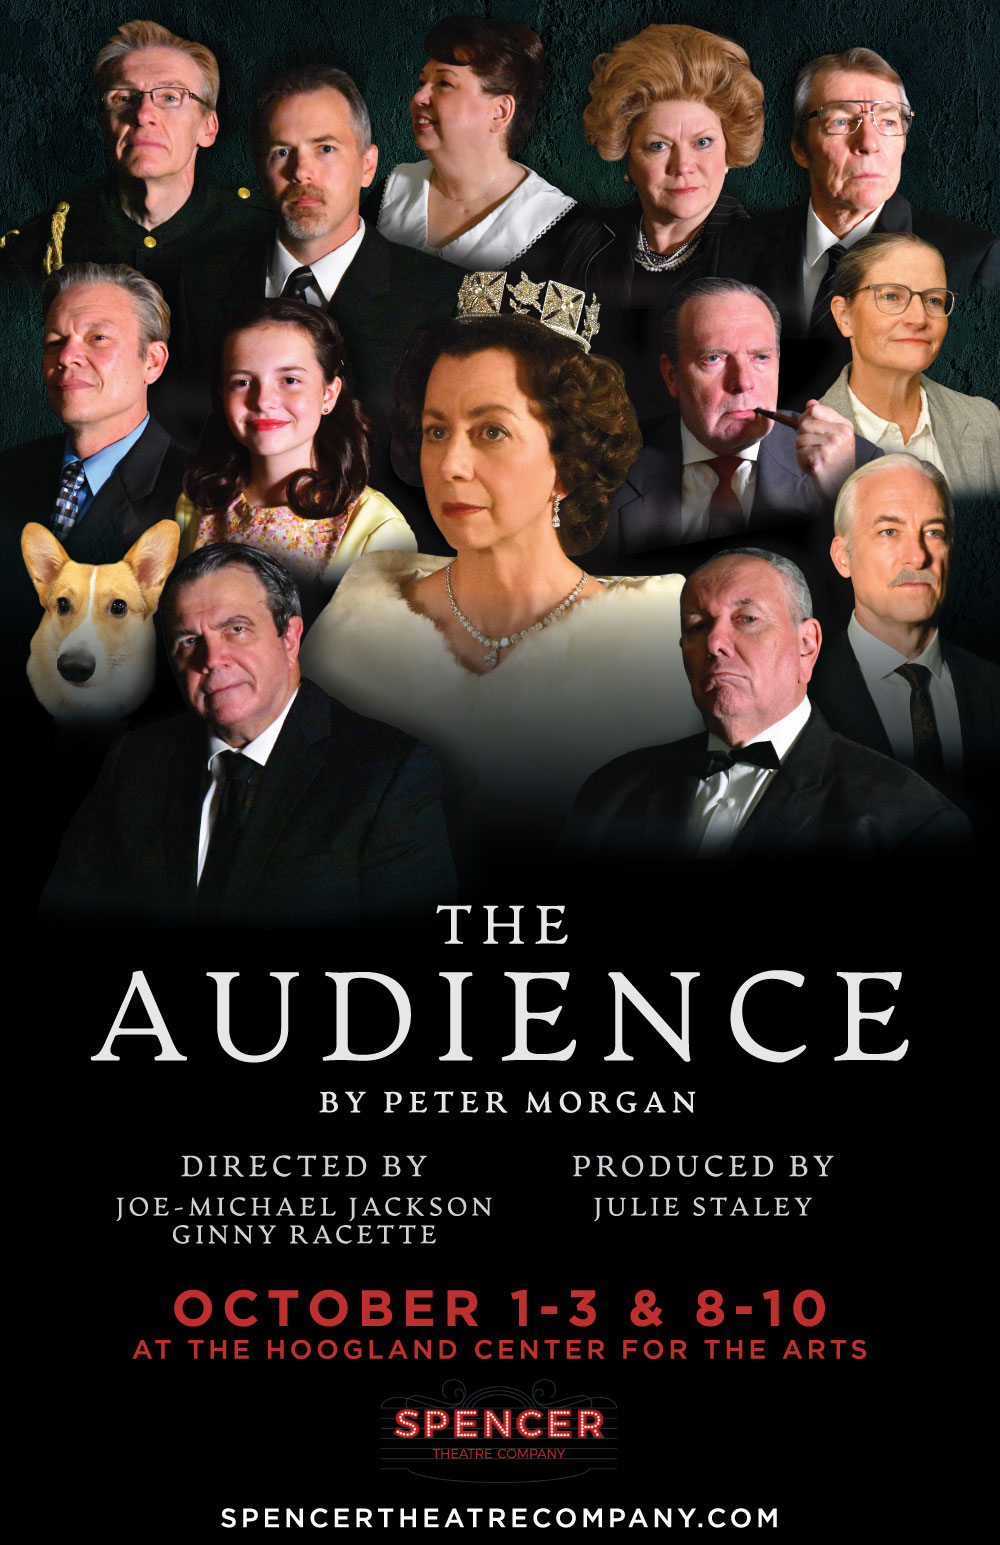 Spencer Theatre presents The Audience October 1-3 & 8-10